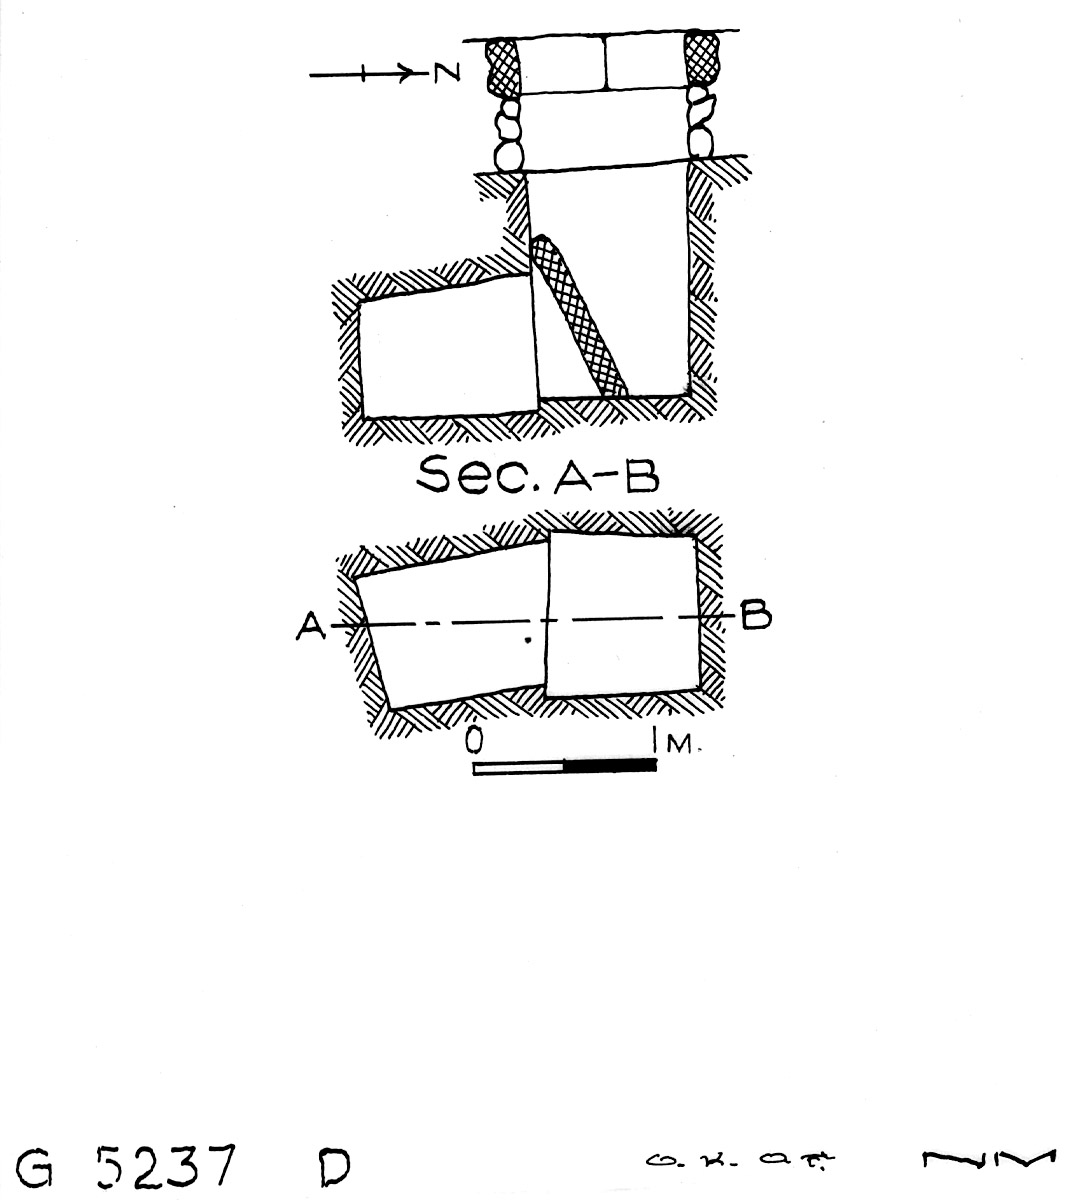 Maps and plans: G 5237, Shaft D